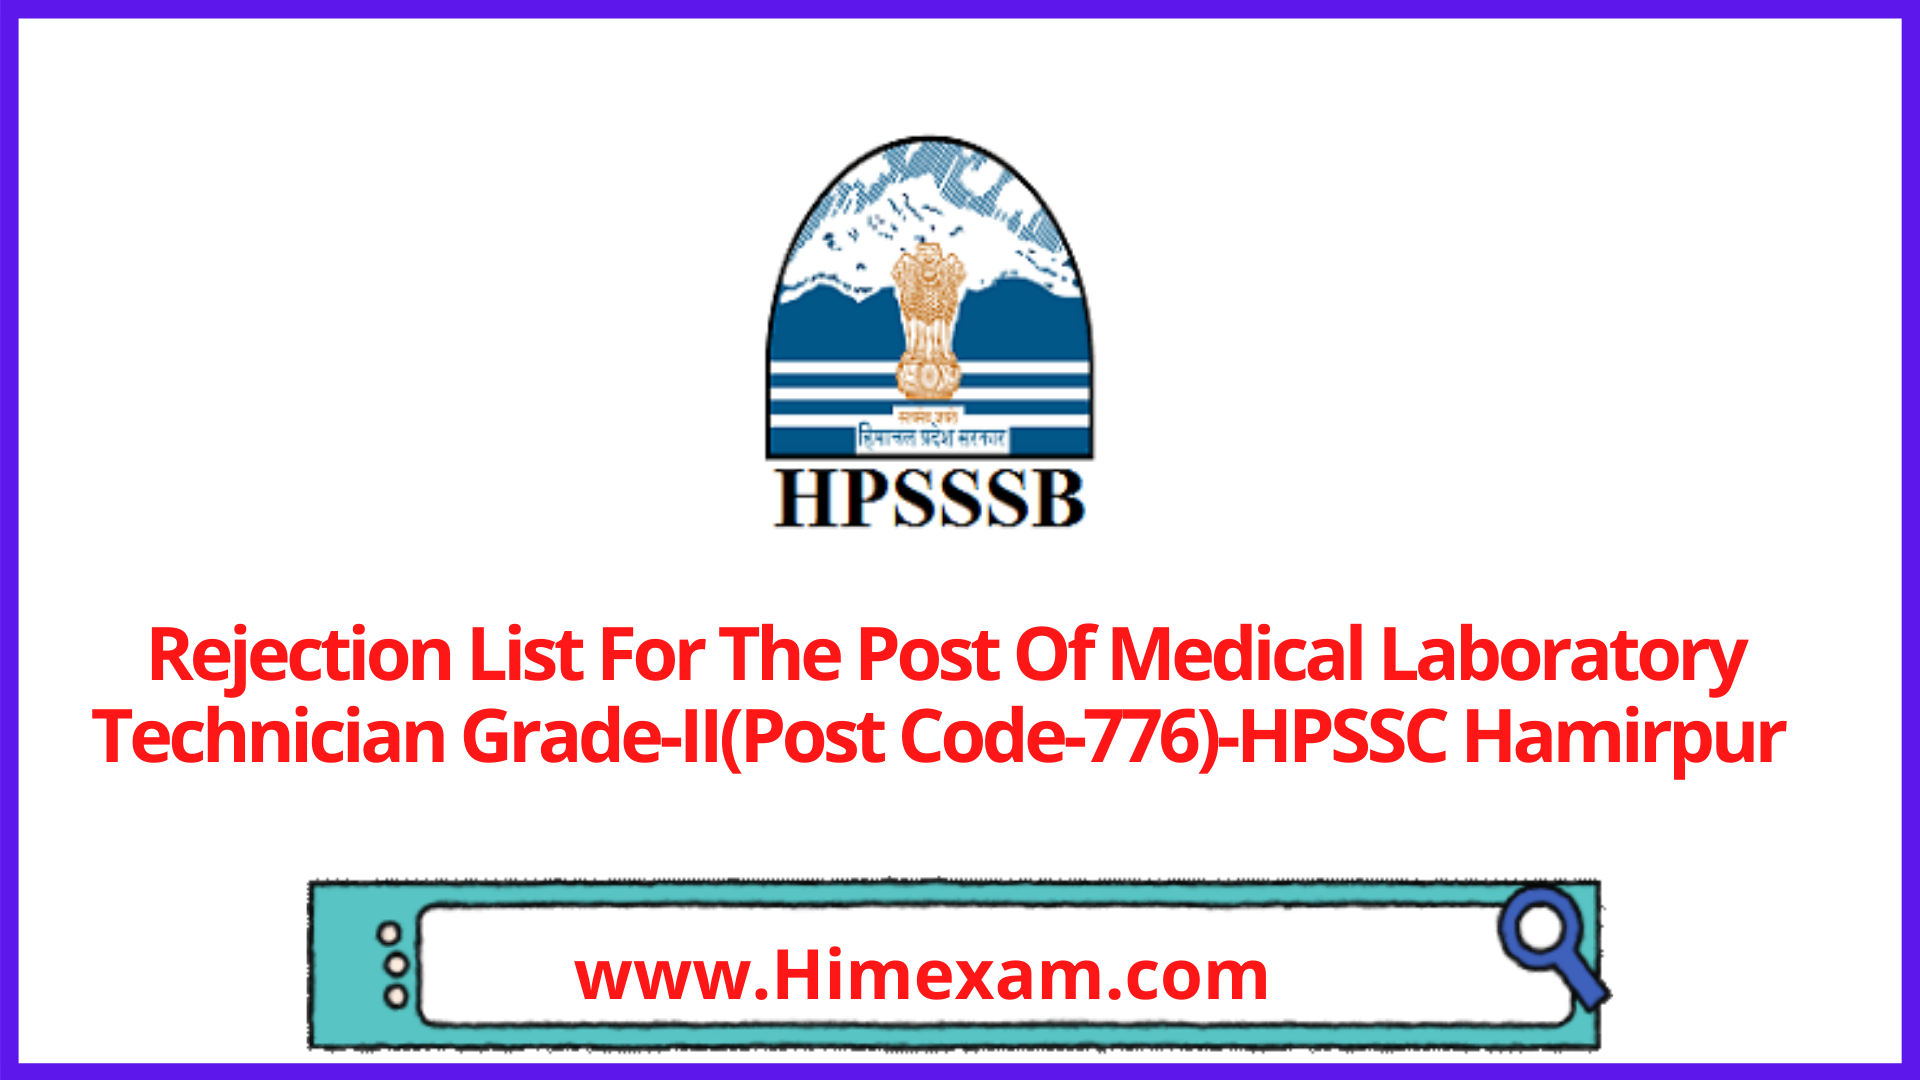 Rejection List For The Post Of Medical Laboratory Technician Grade-II(Post Code-776)-HPSSC Hamirpur